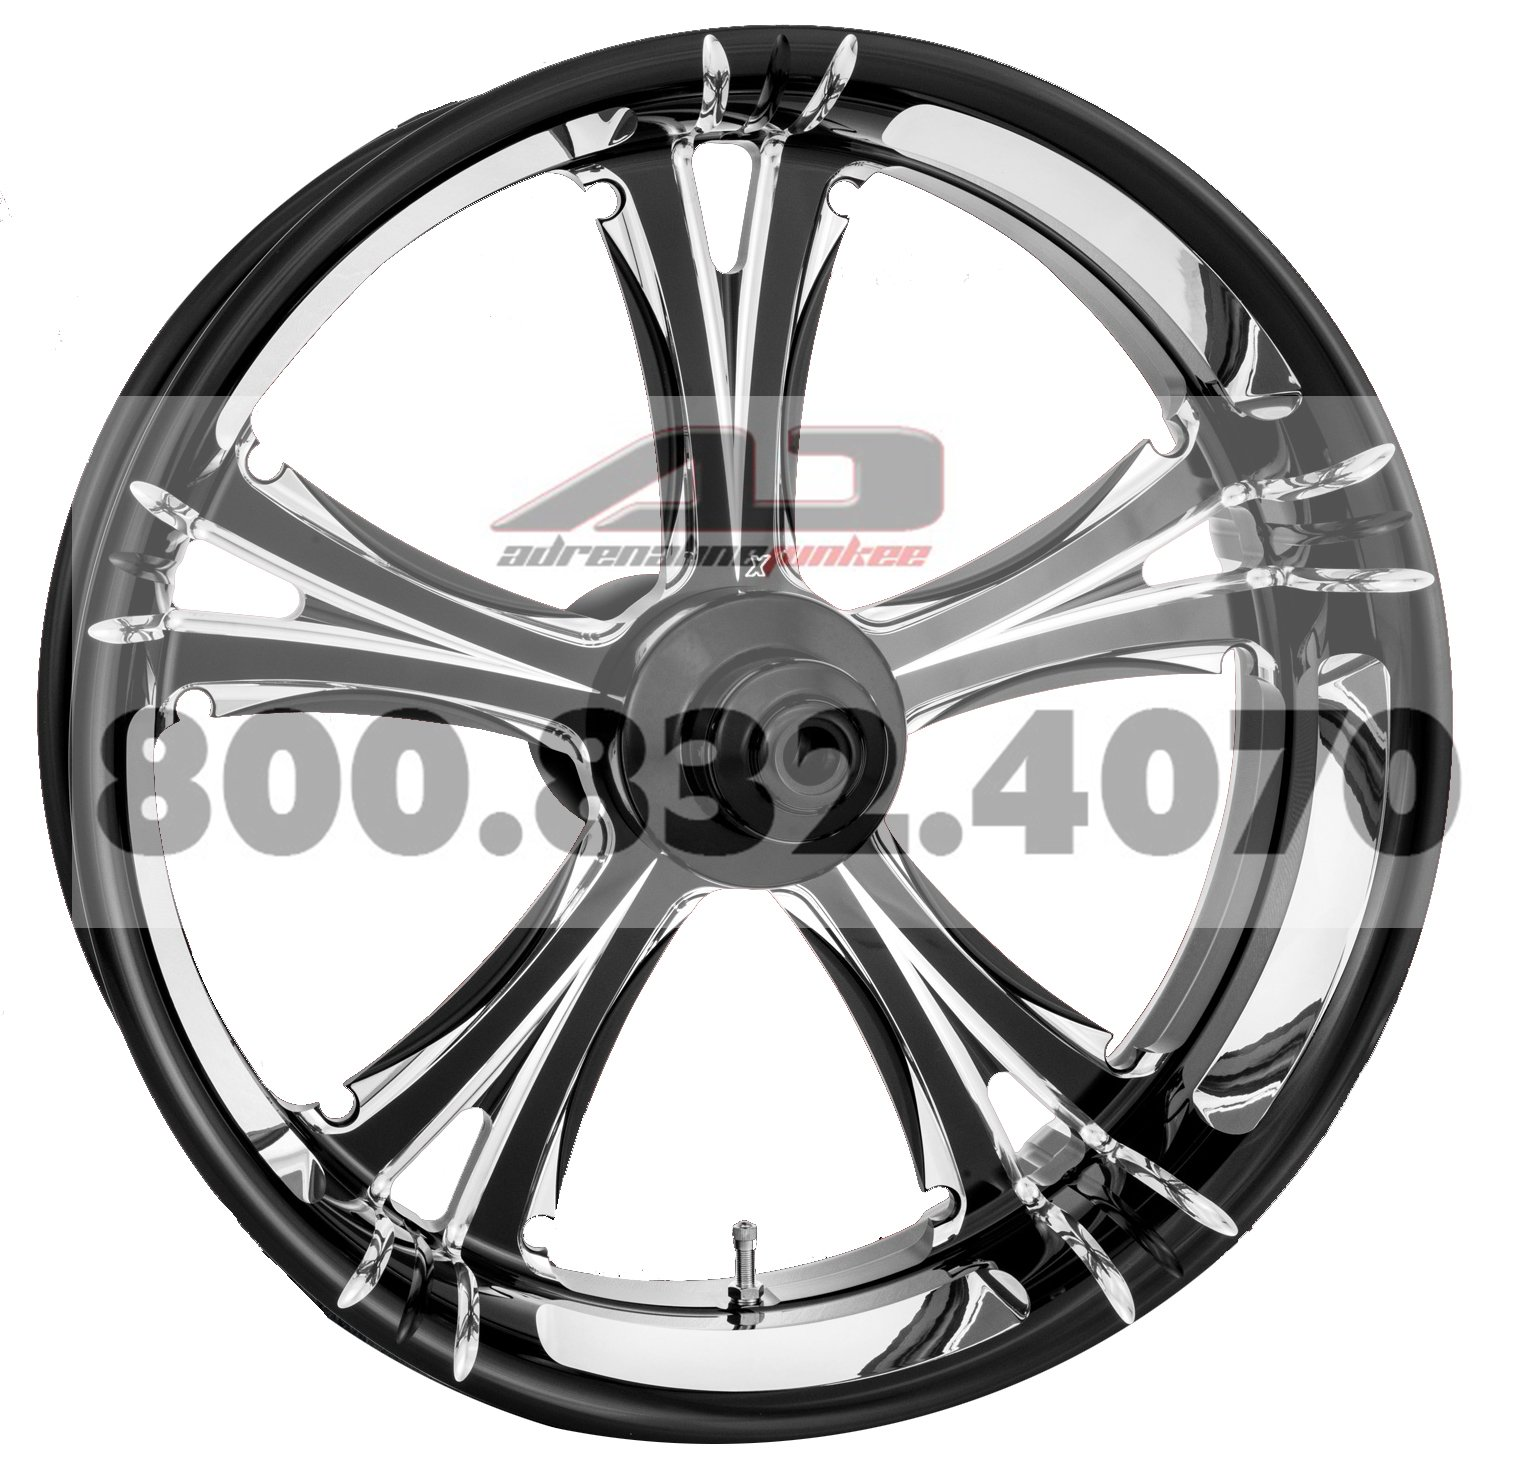 Xtreme Machine Fierce Rear Wheel - 18x4.25 - Black Cut Xquisite , Color: Black, Position: Rear, Rim Size: 18 1290-7809R-XFR-BMP by Xtreme Machine